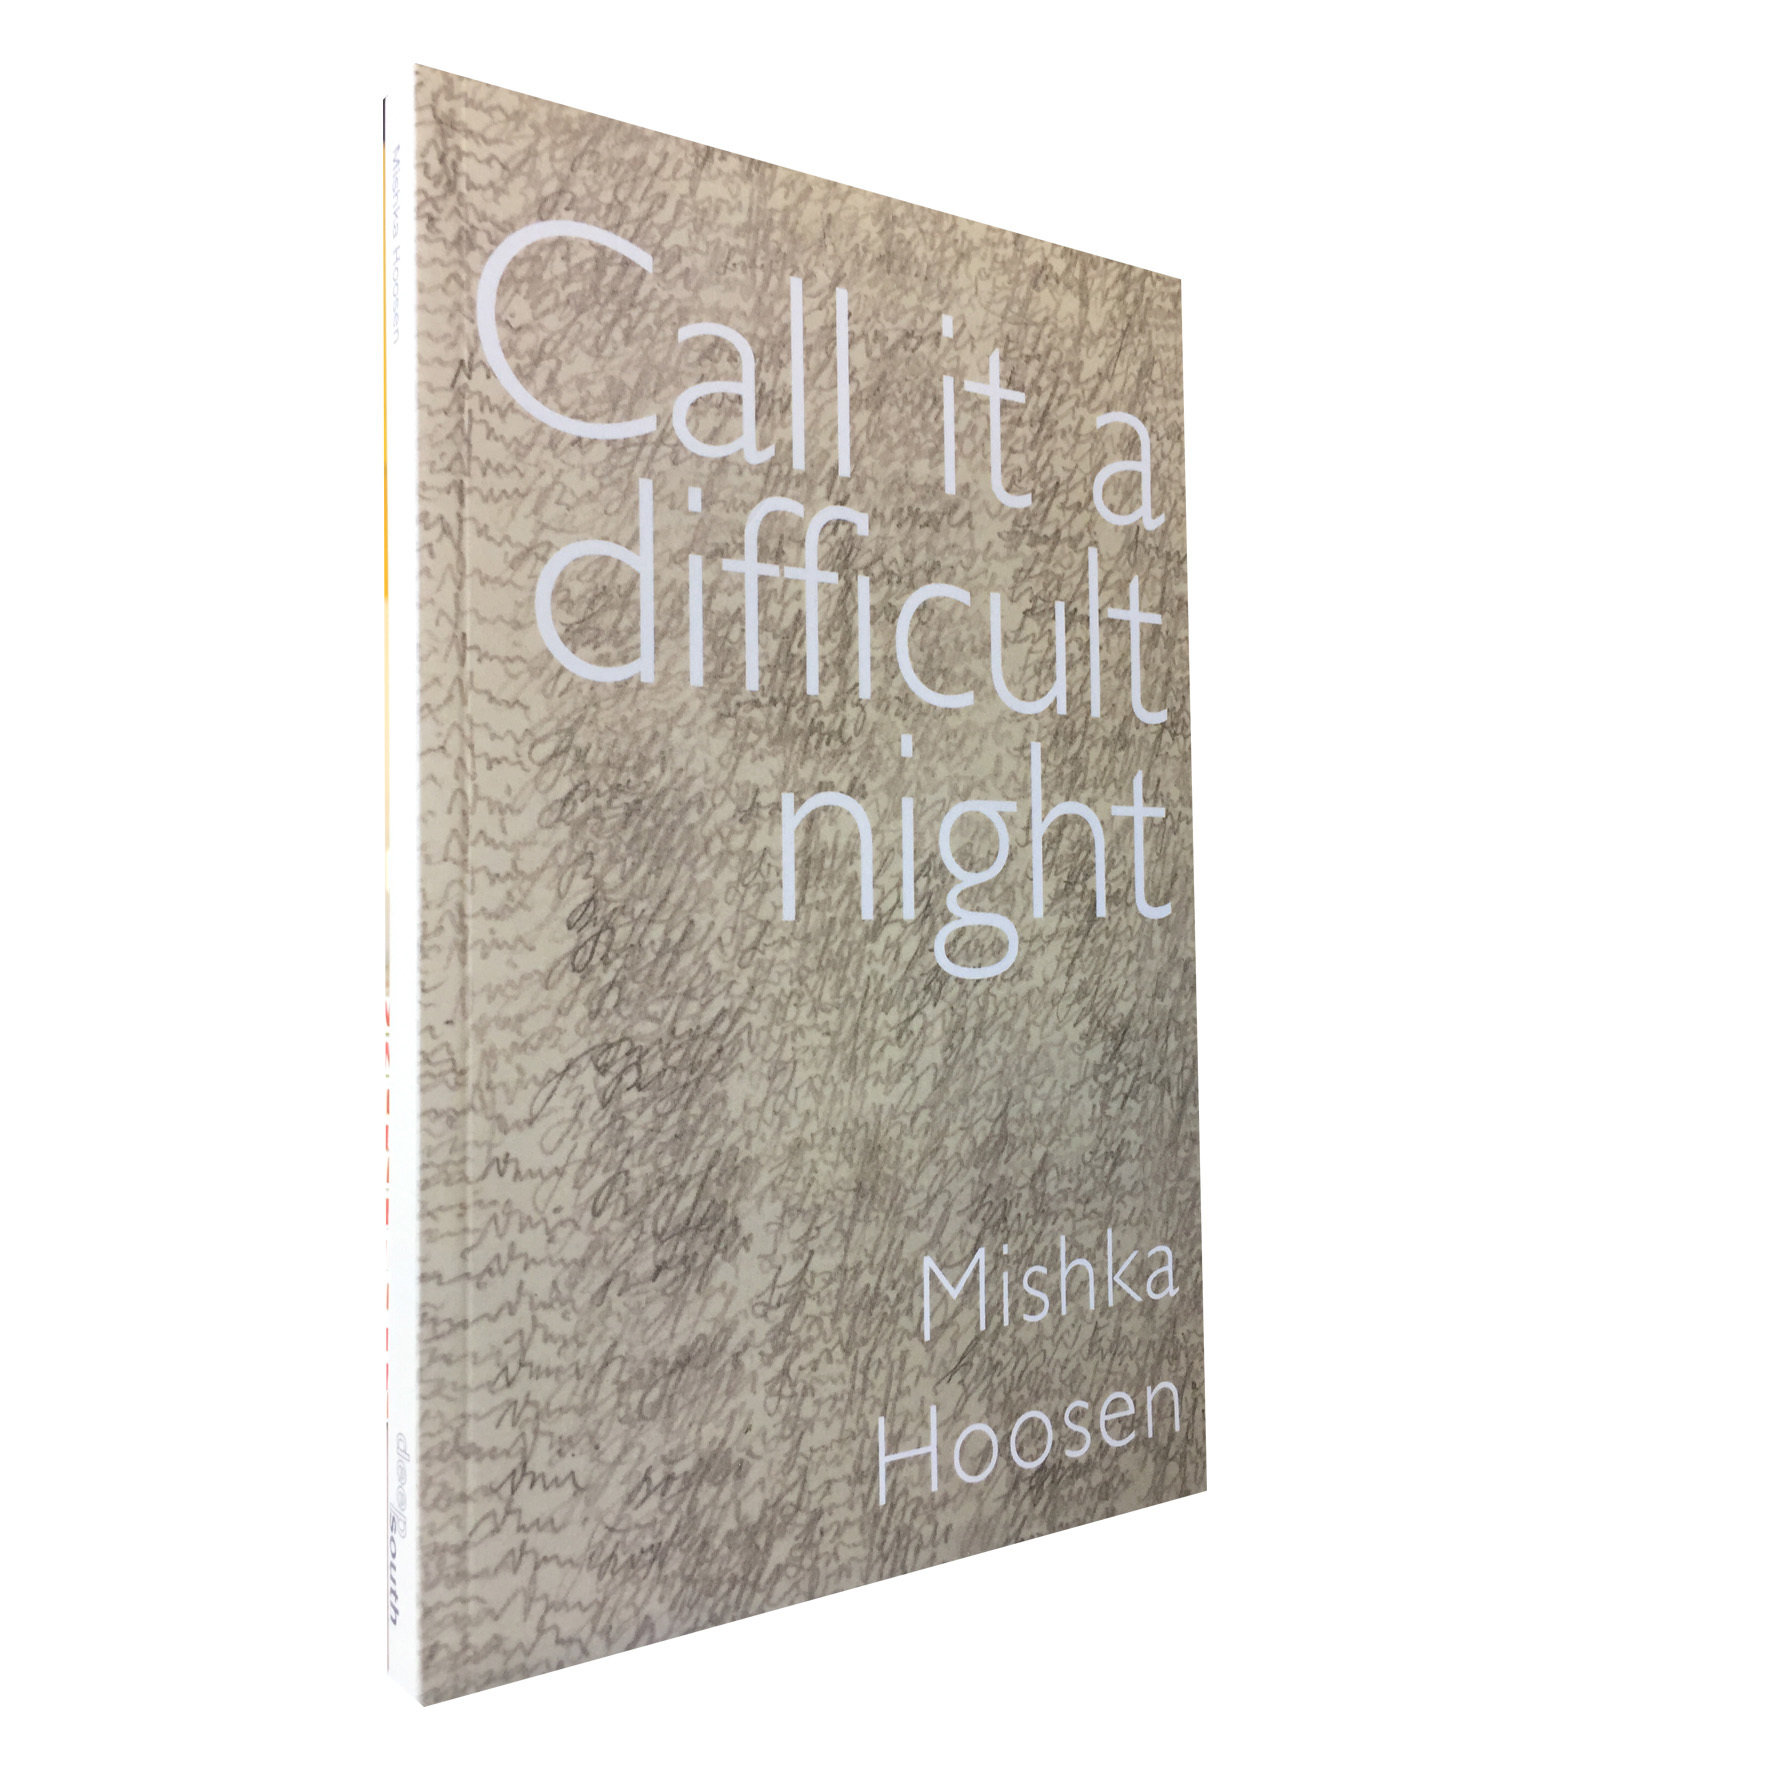 Call it a difficult night by Mishka Hoosen (Deep South, 2016) DP03